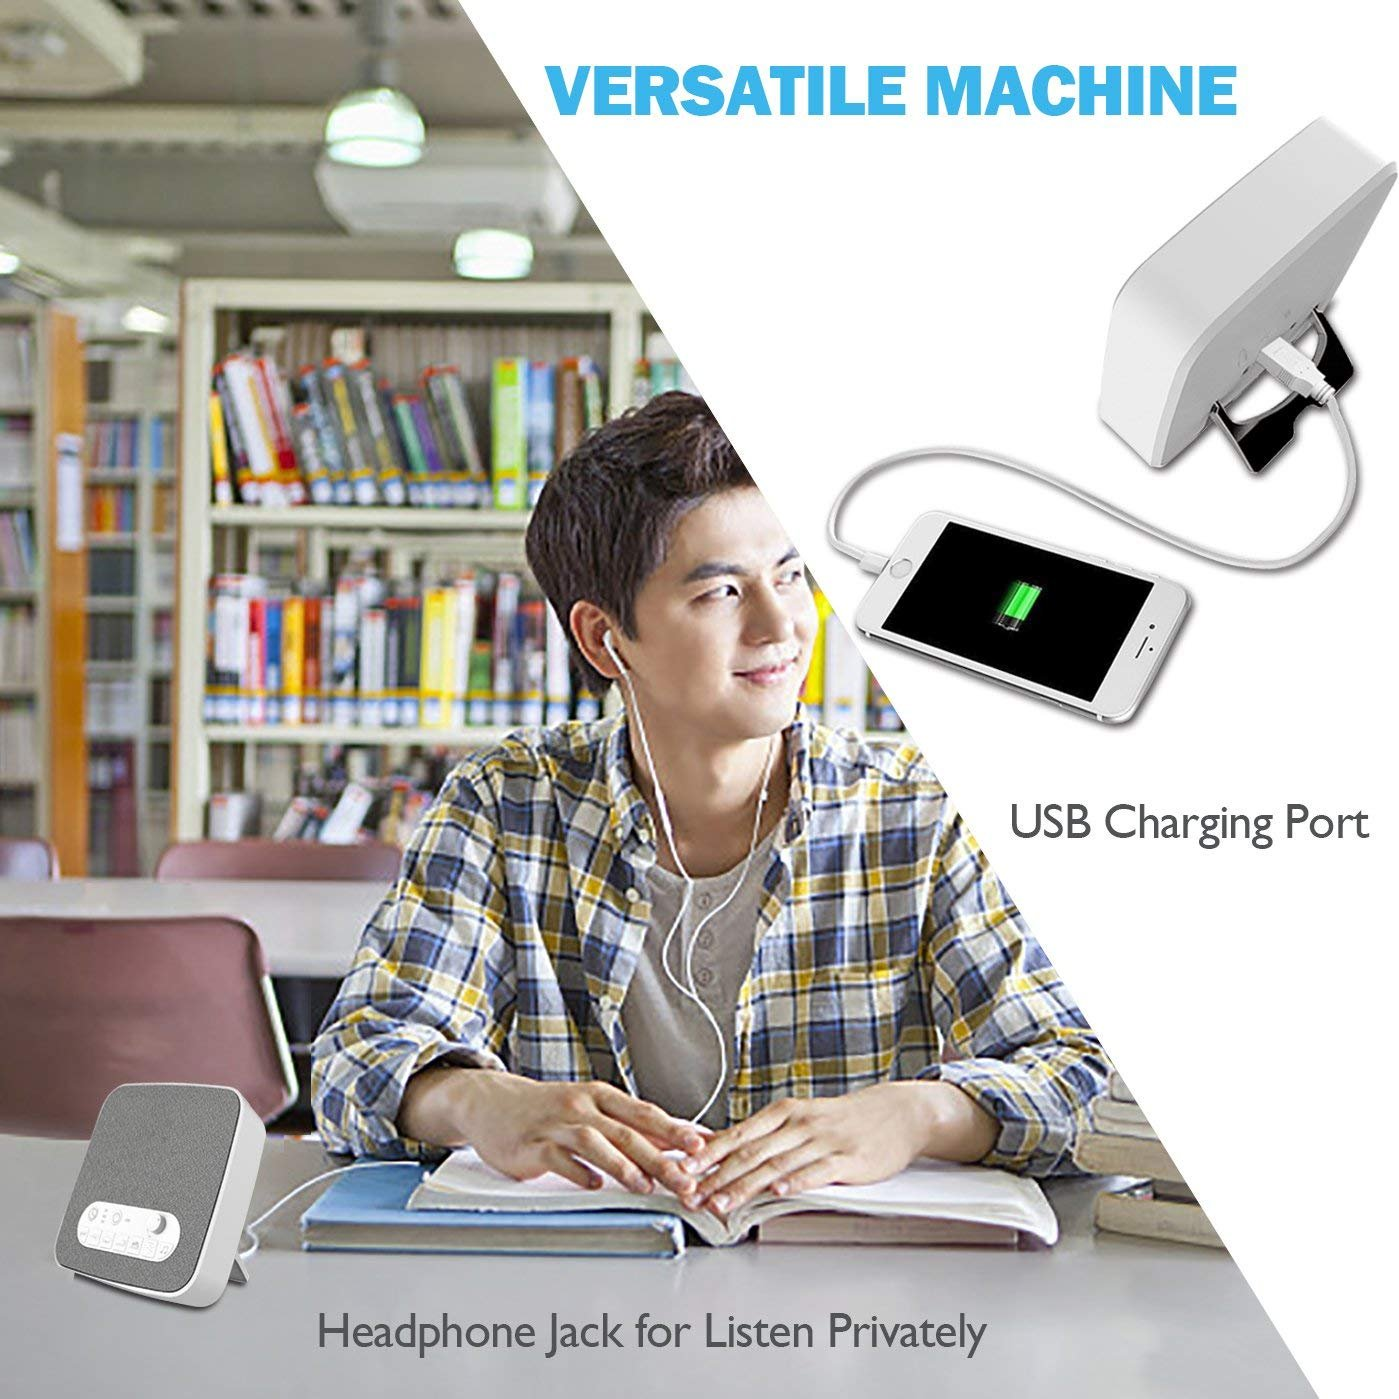 White Noise Machine for Sleeping, BESTHING Sleep Sound Machine with Non-Looping Soothing Sounds for Baby Adult Traveler, Portable for Home Office Travel. Built in USB Output Charger & Timer. by BESTHING (Image #6)